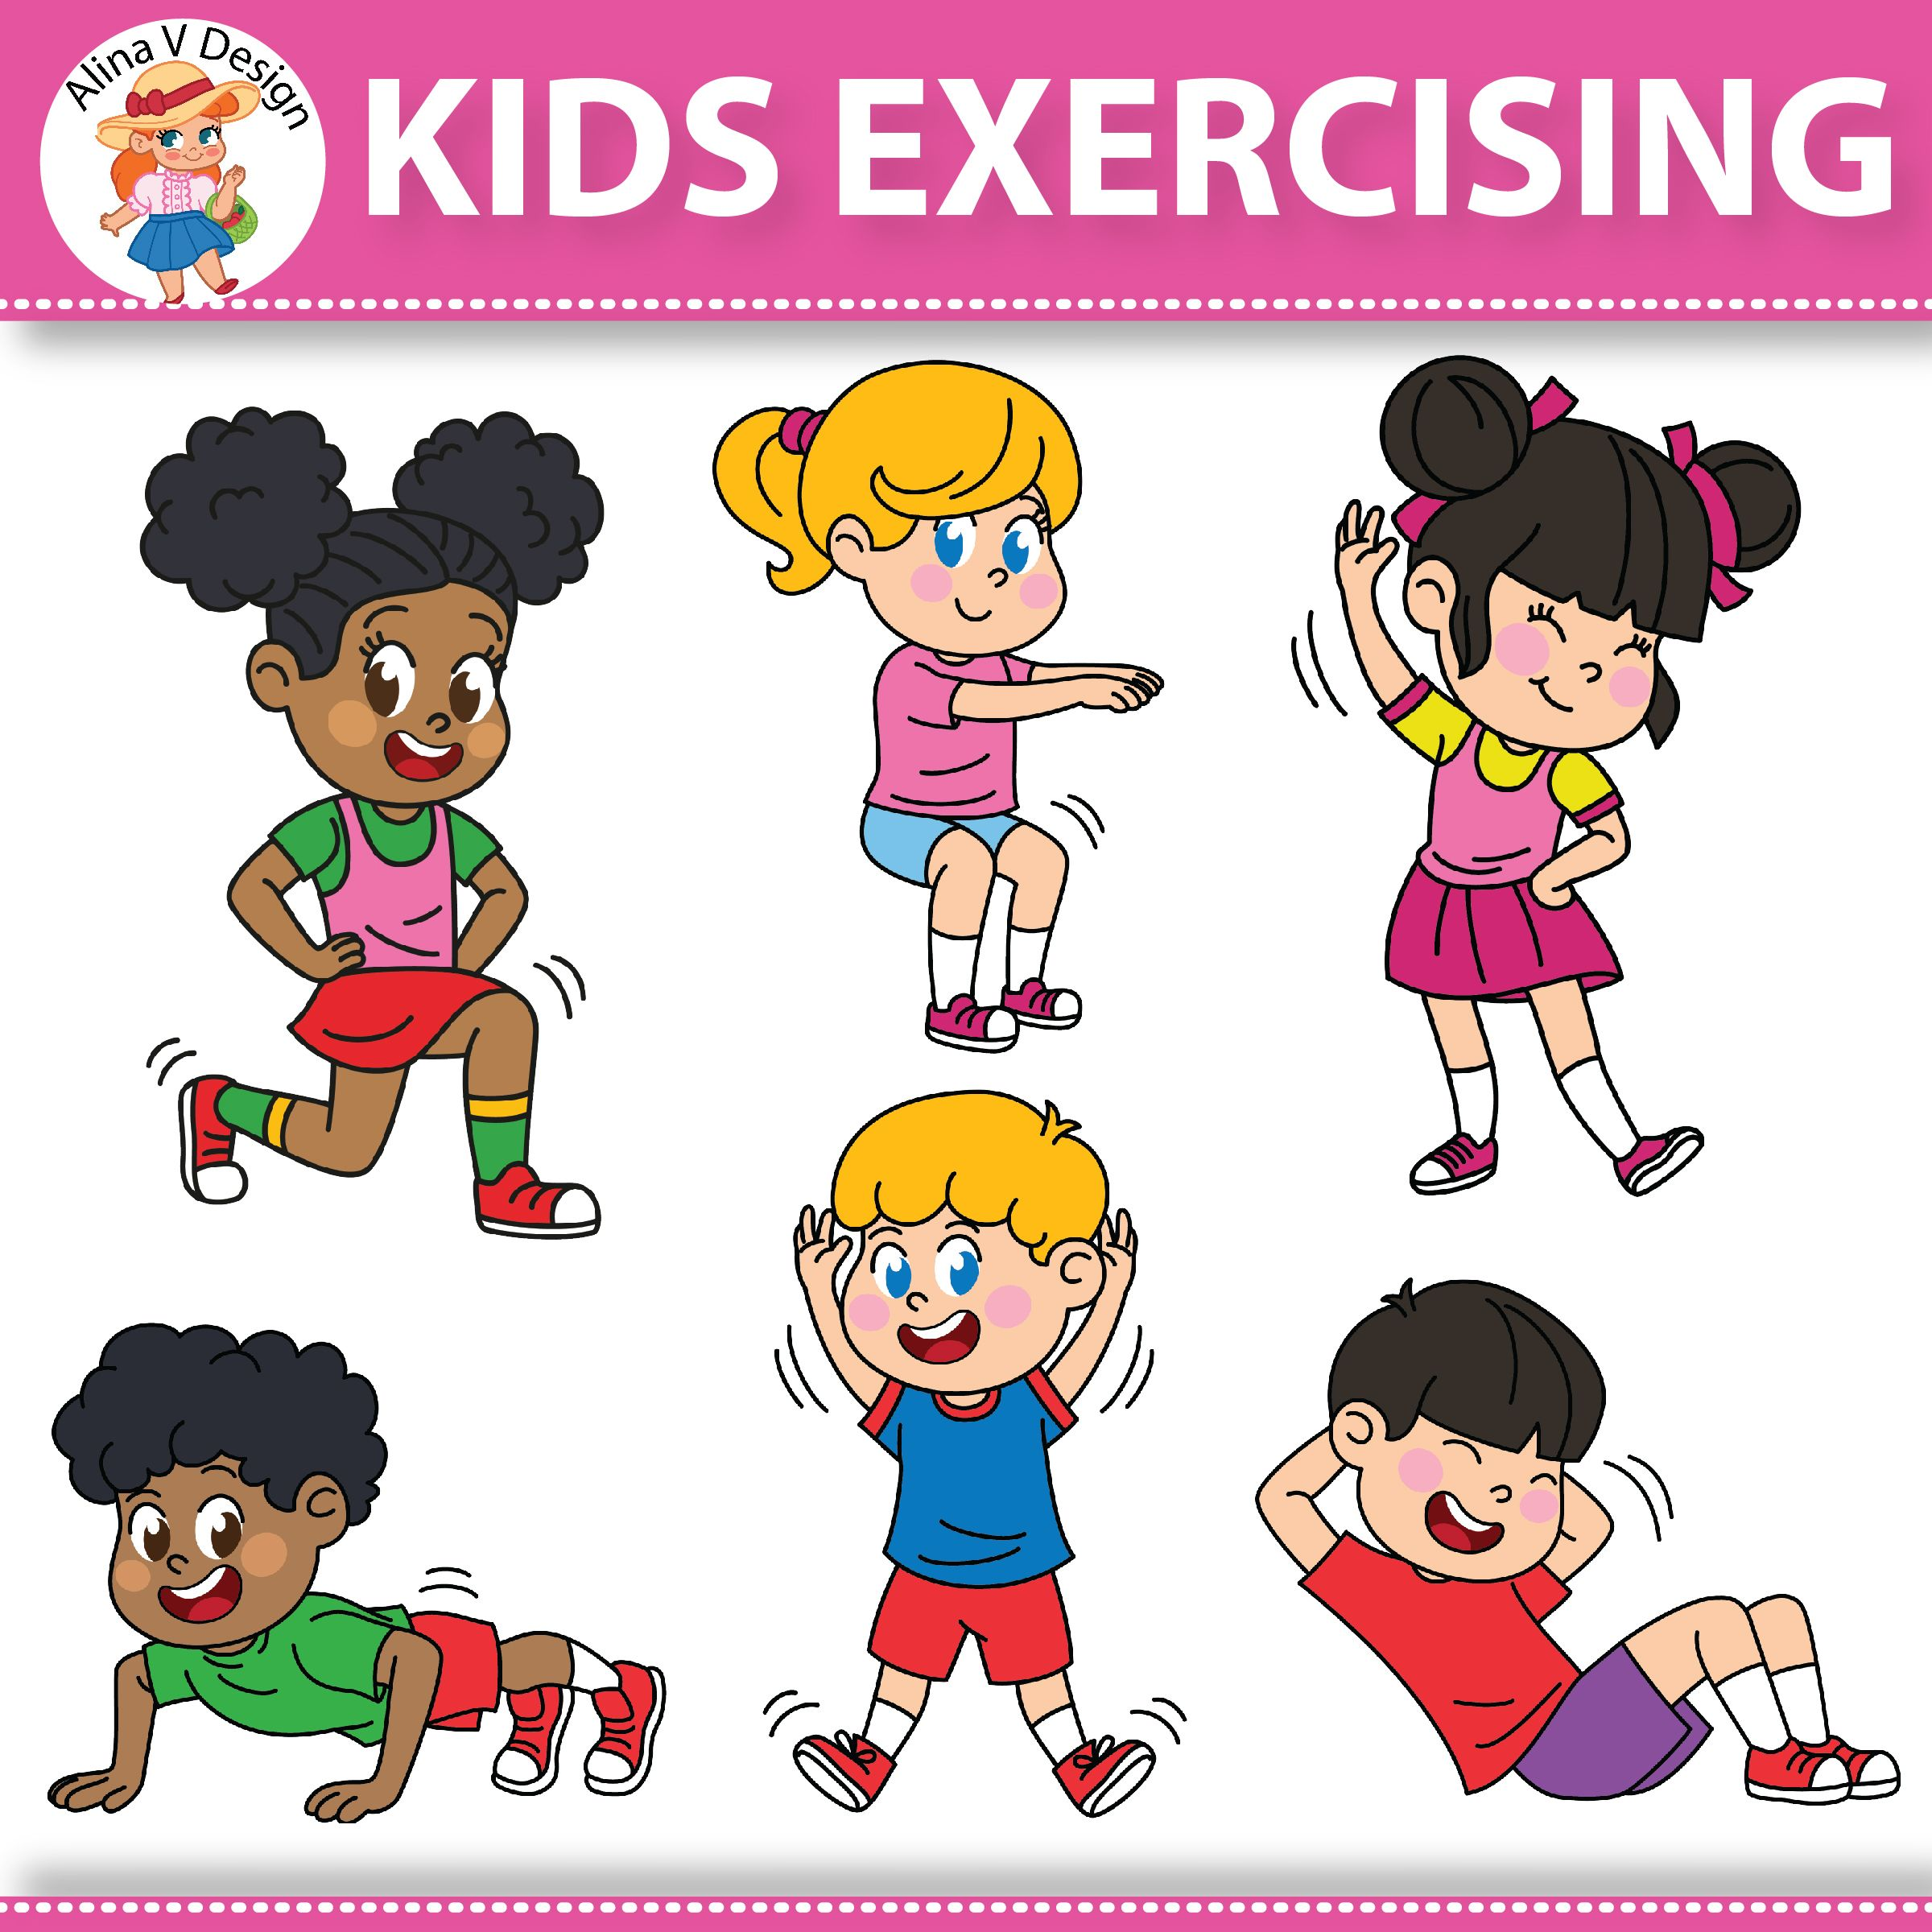 Kids exercise clipart picture black and white Kids Exercising Exercises Workout | Clipart & Photos ... picture black and white